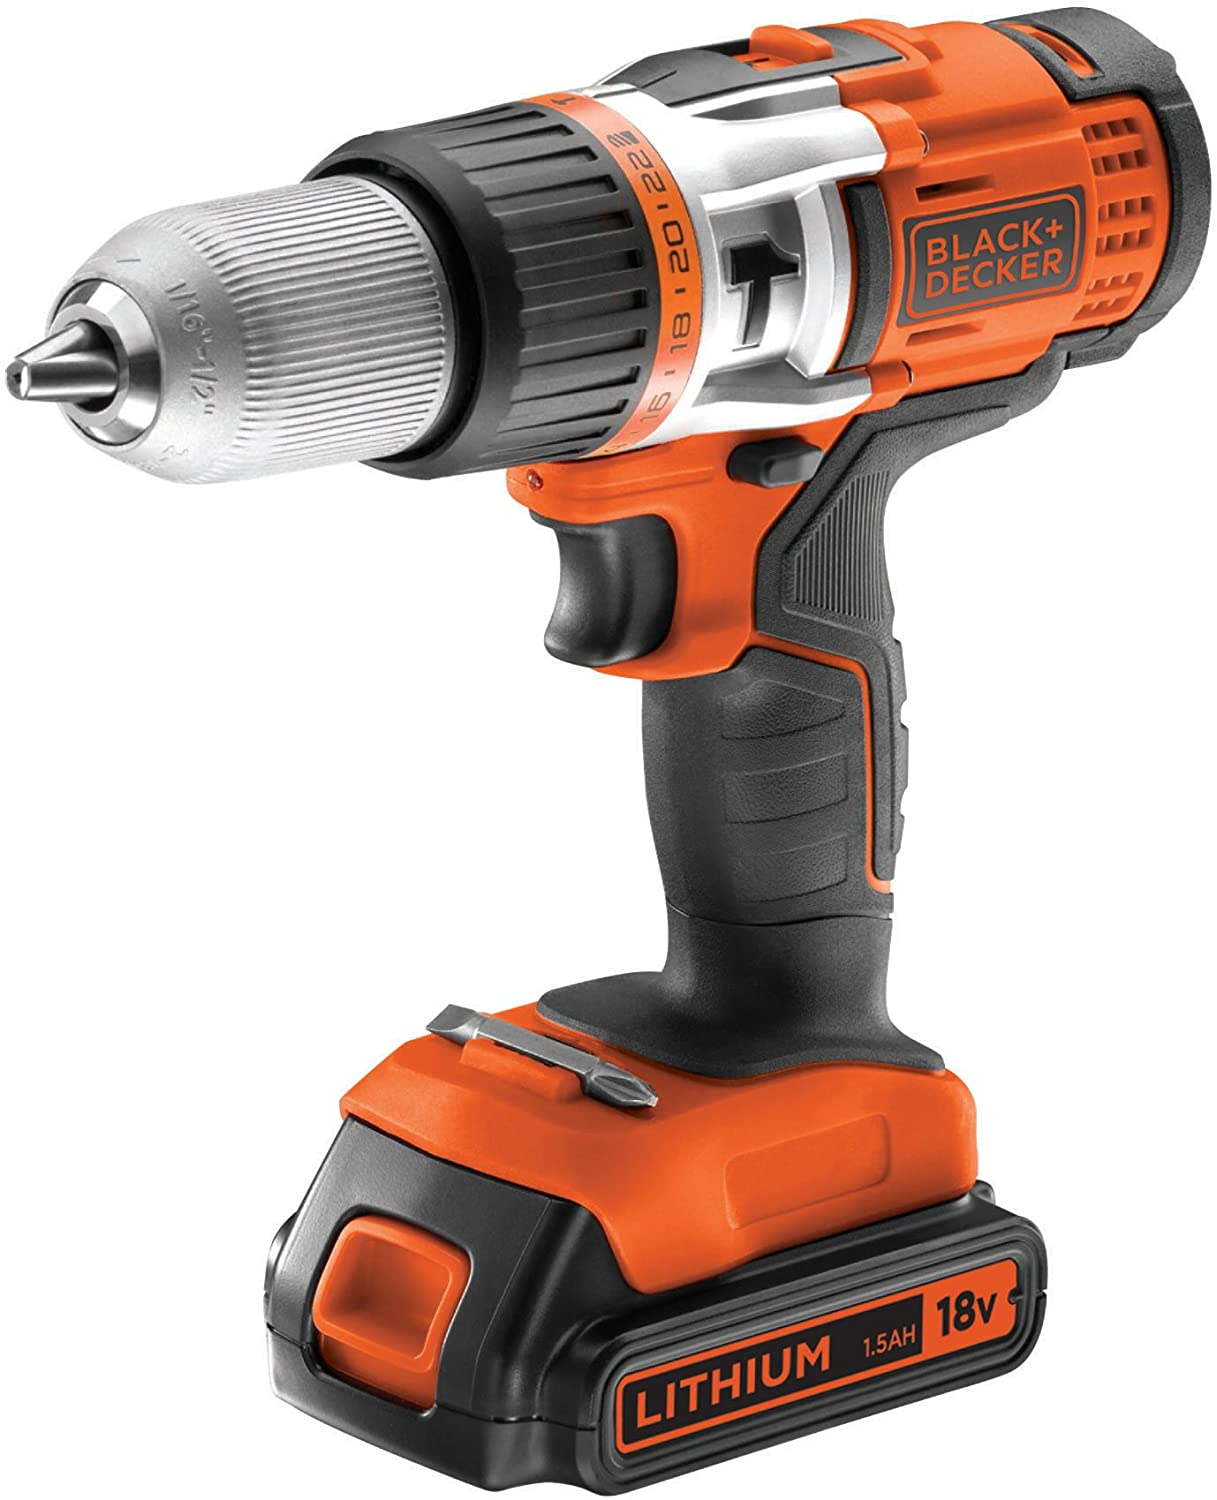 BLACK+DECKER EGBHP188BK-QW Perceuse à percussion sans fil, 18V, Noir, Orange, 2 Batteries